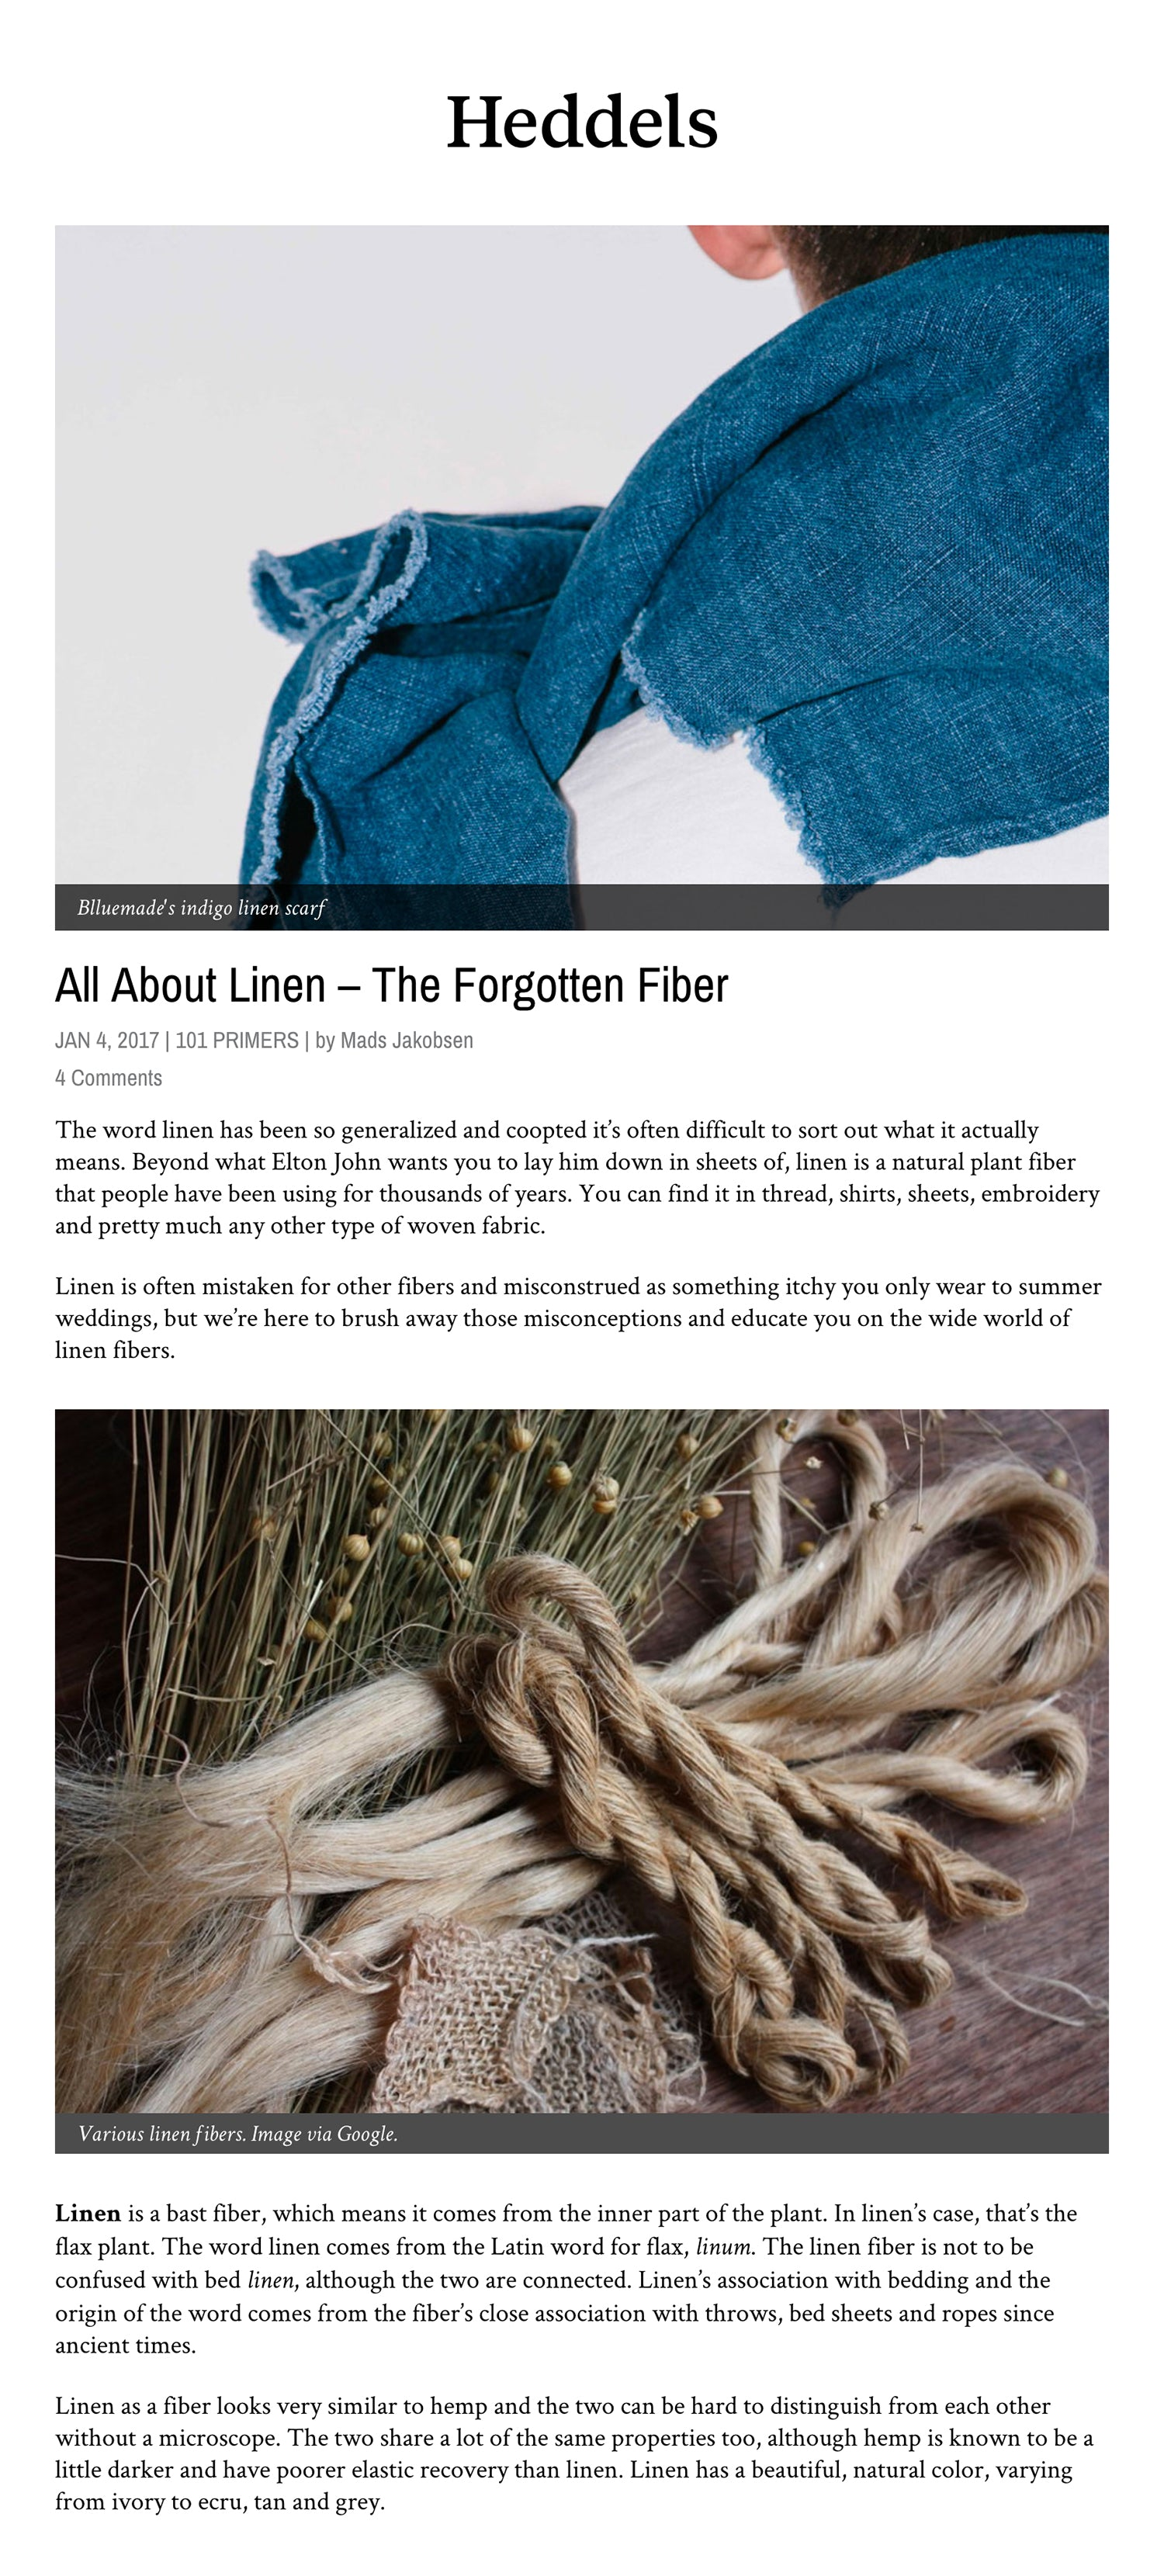 Heddels Article Blluemade All About Linen – The Forgotten Fiber